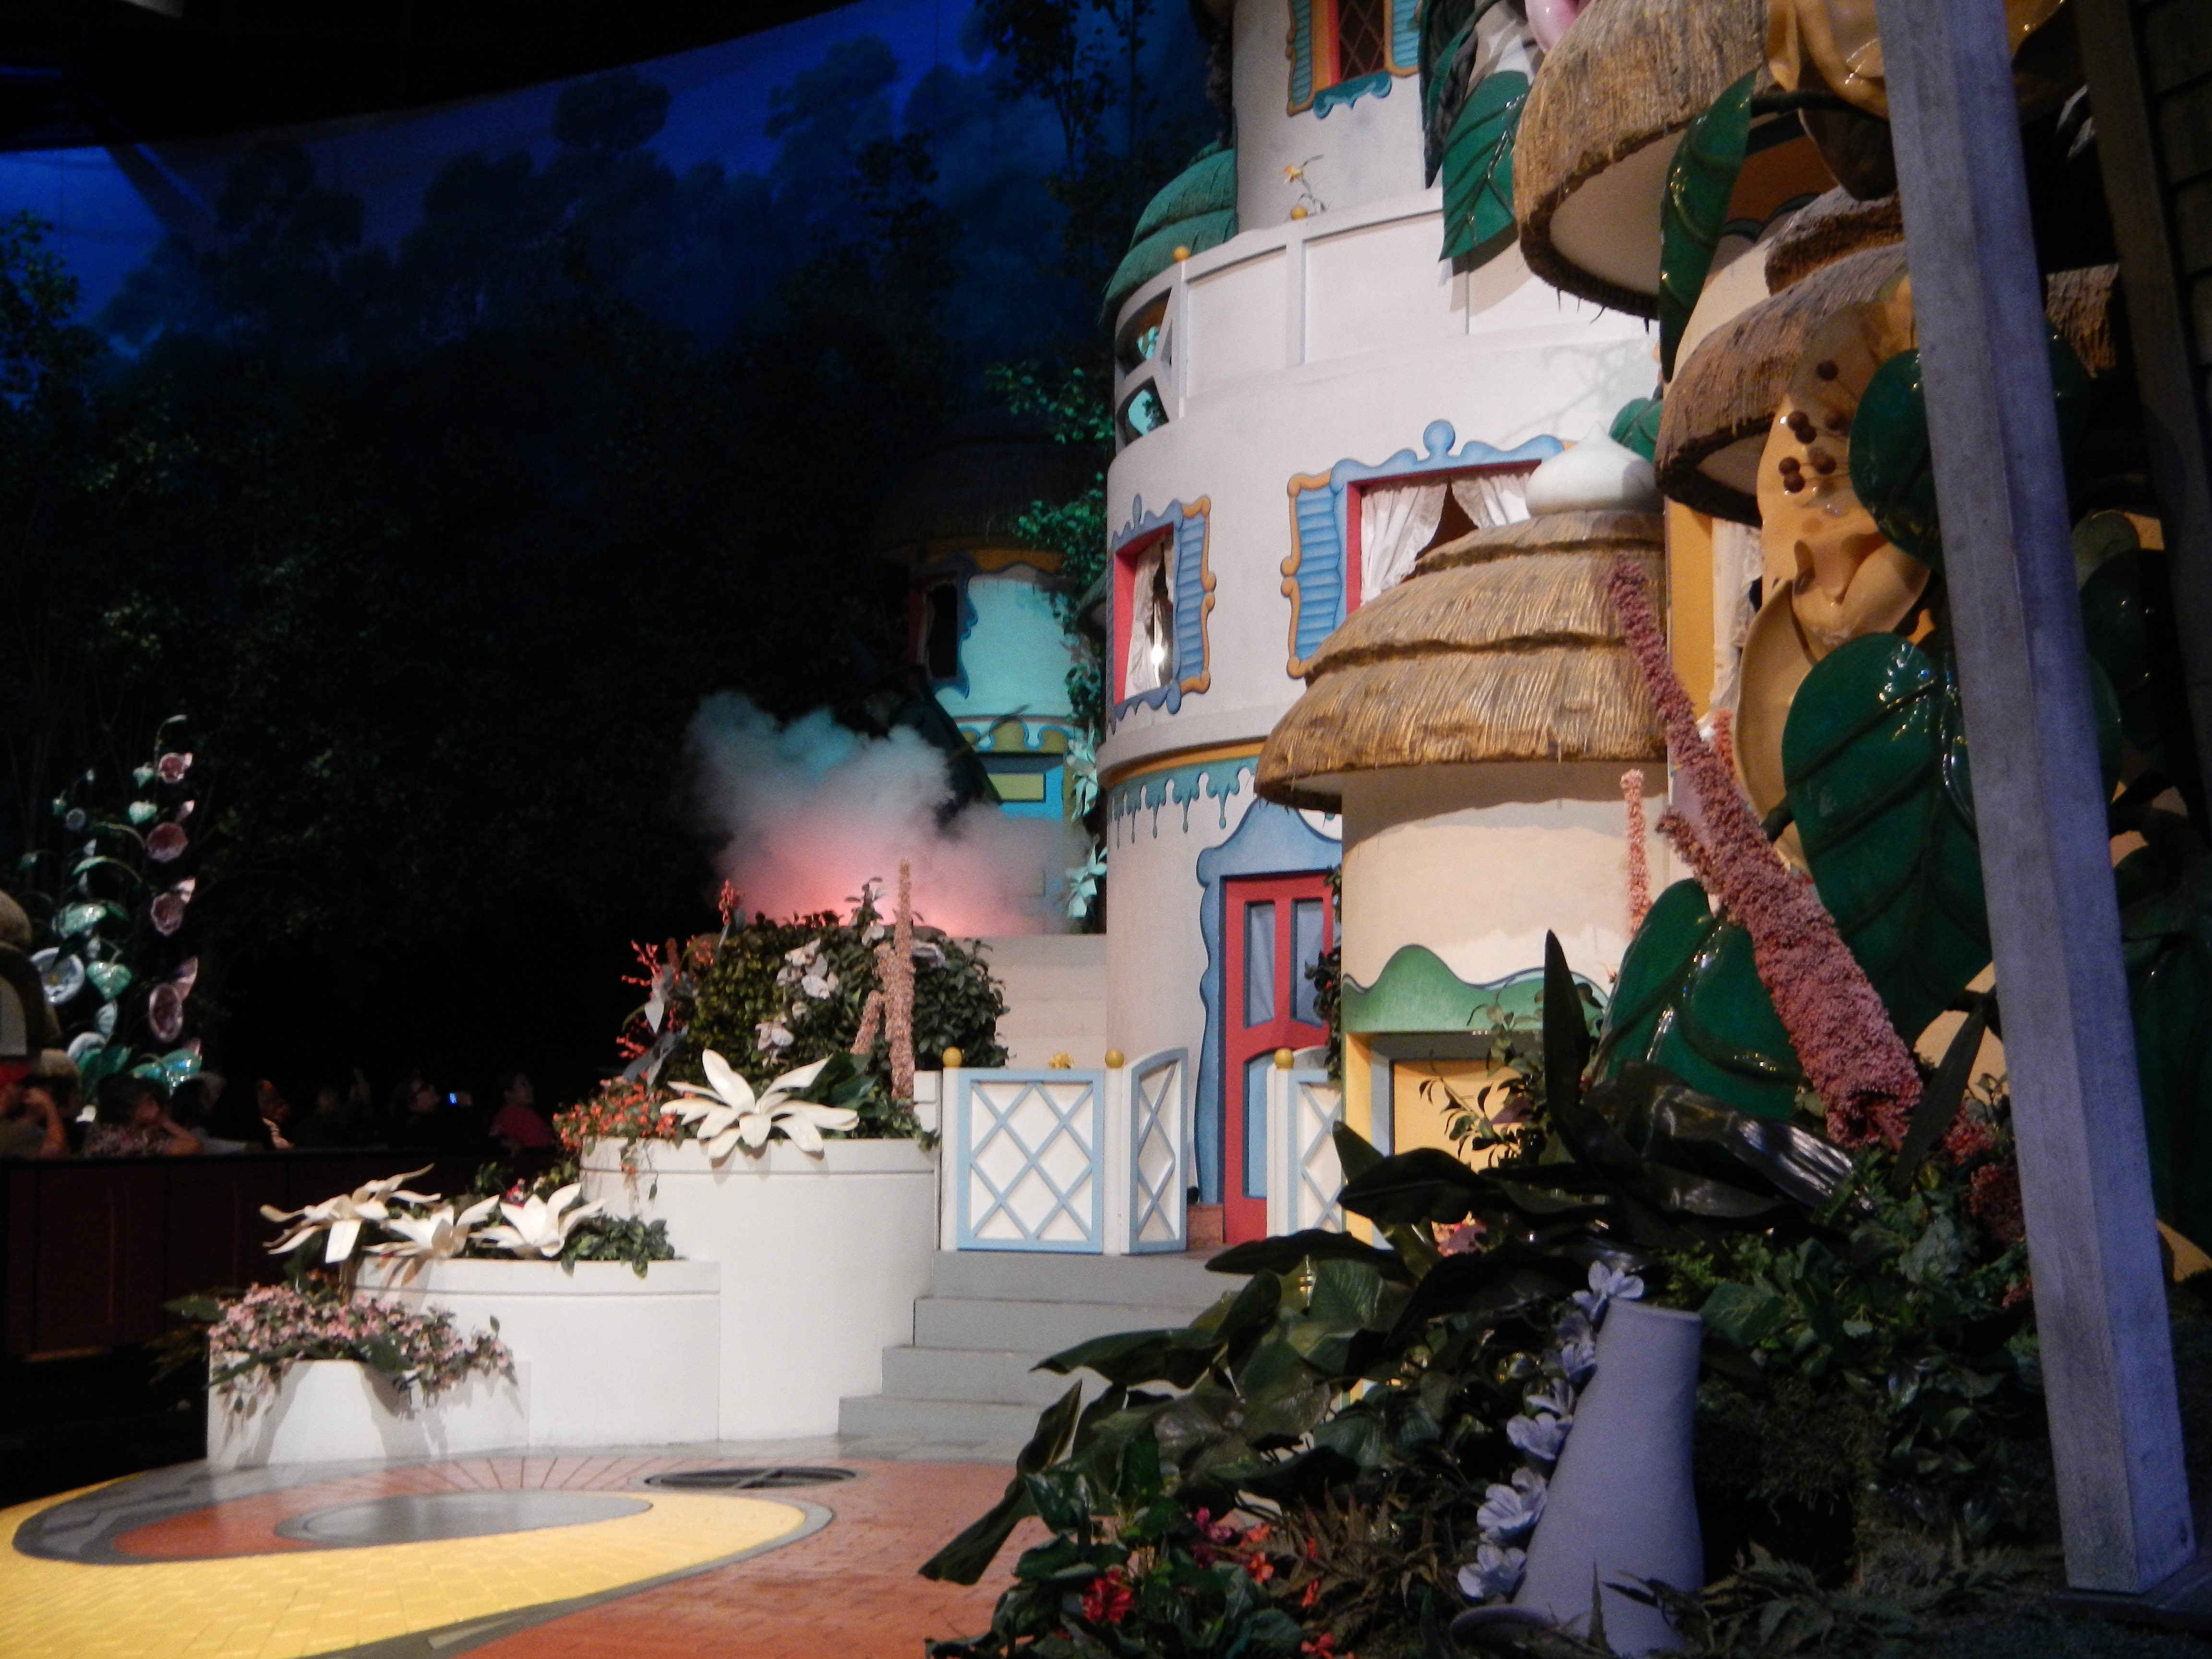 Scene from Great Movie Ride